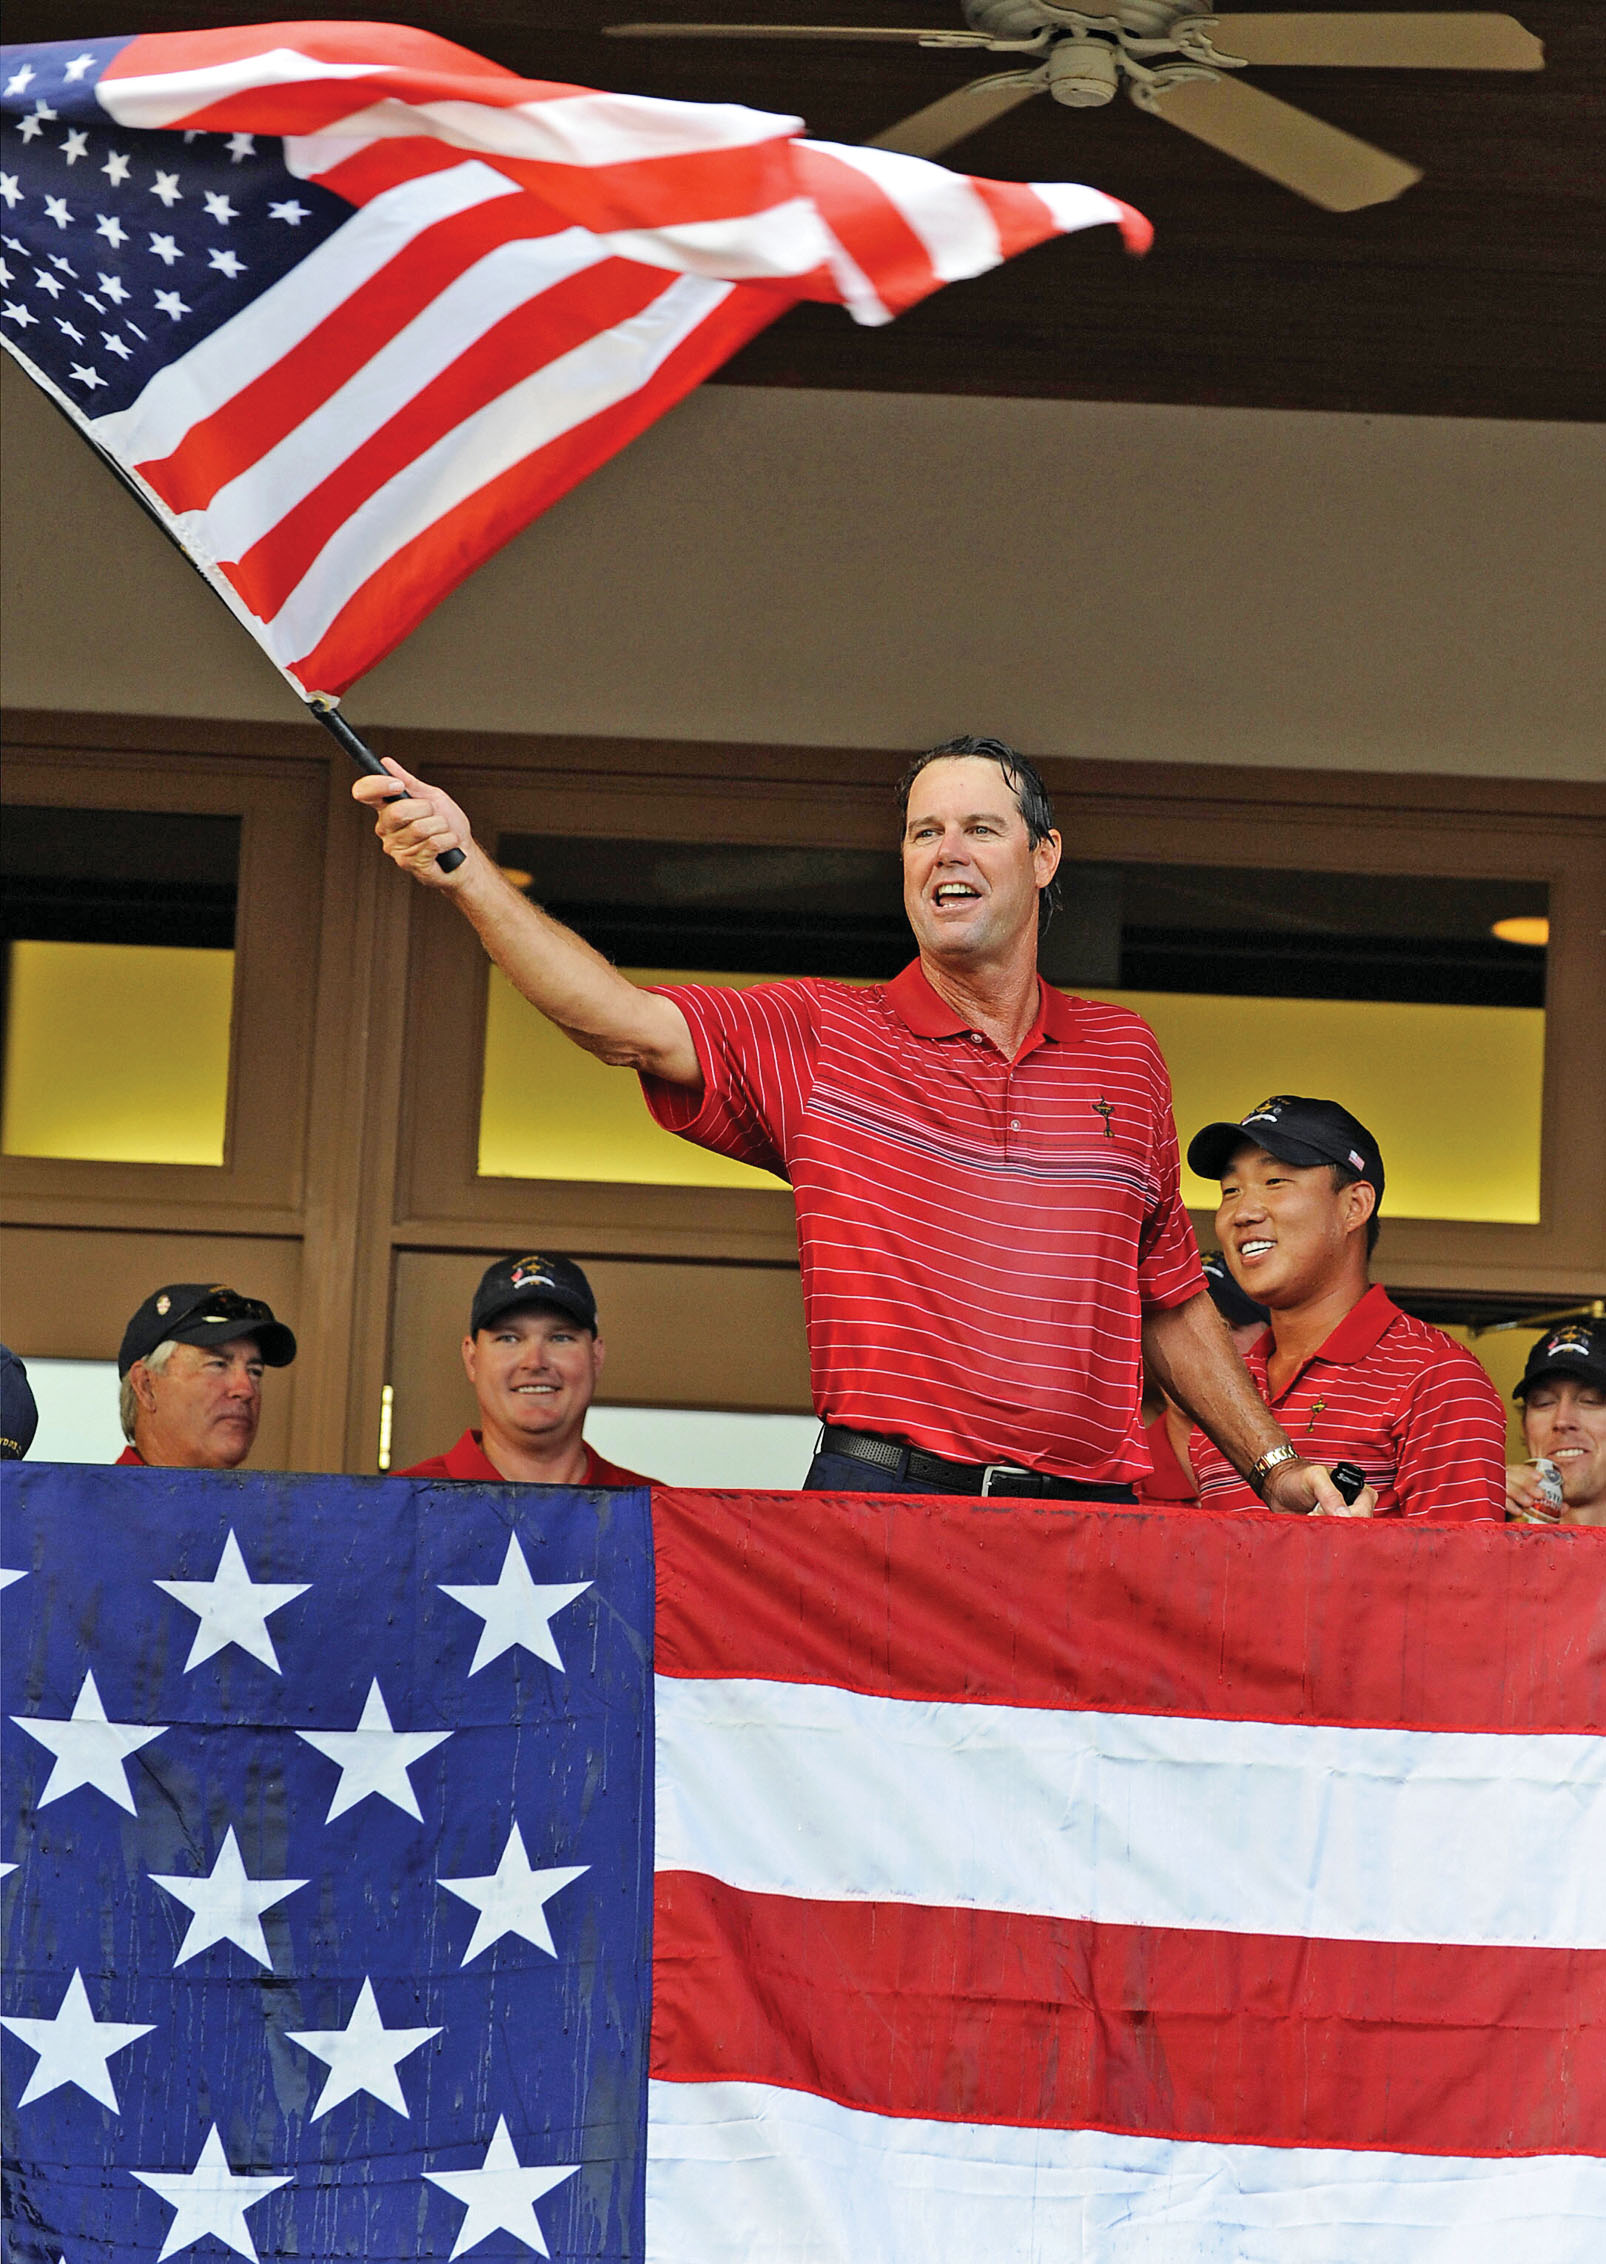 Paul Azinger was able to sell his '08 American team as underdogs, and the attitude paid off.